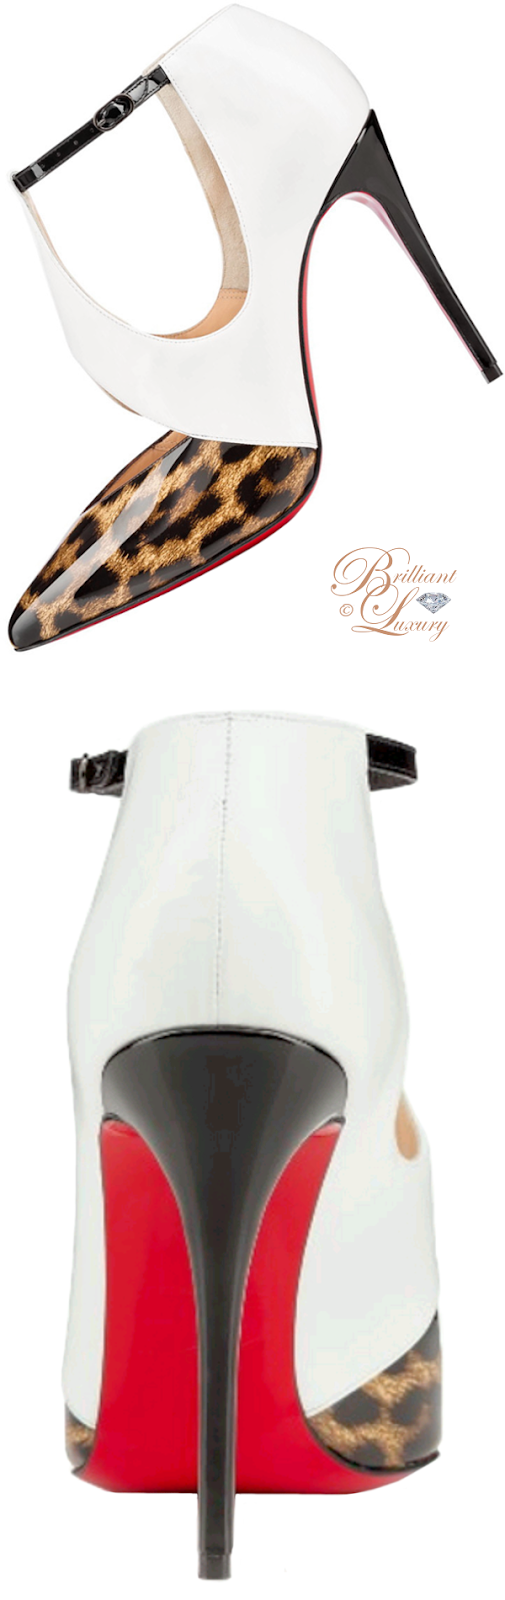 Brilliant Luxury ♦ Christian Louboutin Dictata pump